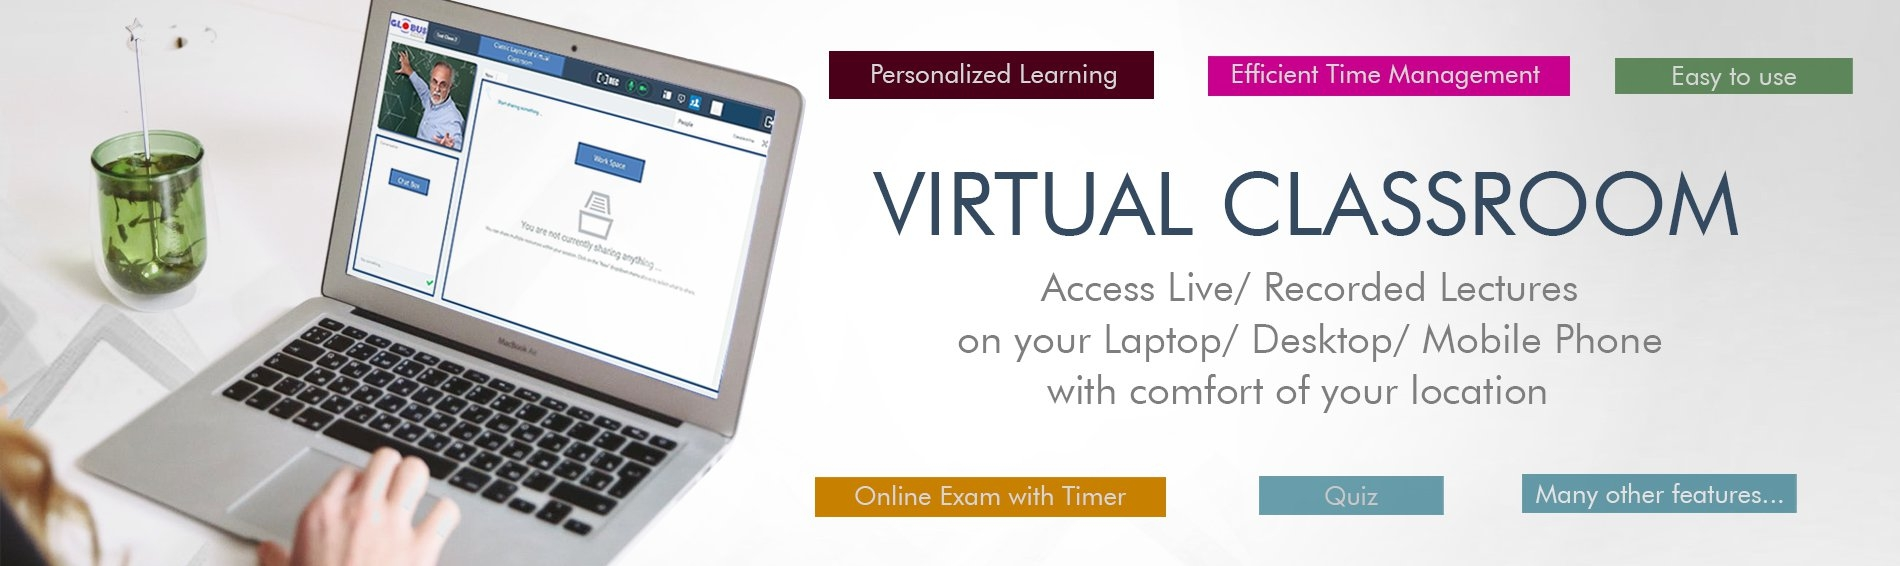 Virtual Classroom and Learning Management System